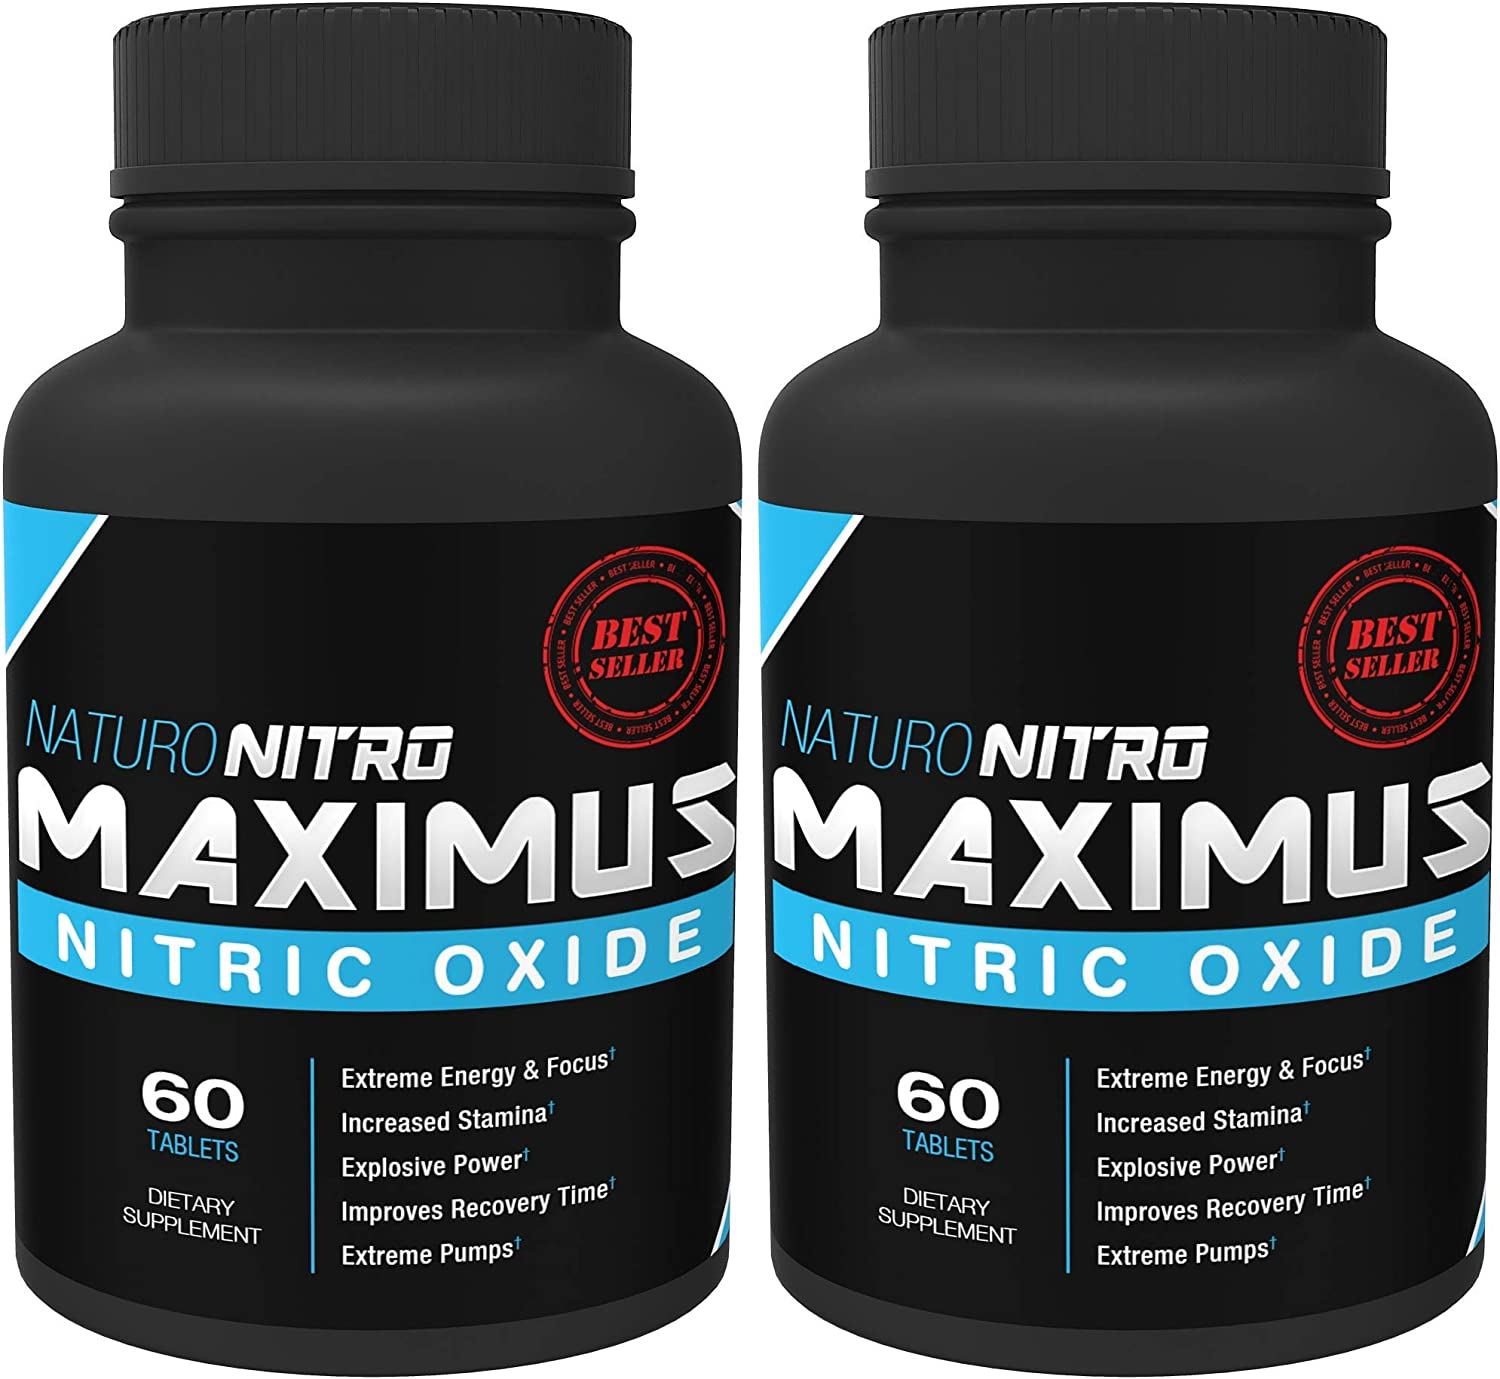 Maximus Nitric Oxide Nitric Oxide Tablets High Potency NO Booster and L-arginine Supplement – Allows You to Build Muscle Faster, Workout and Train Longer and Harder 60ct, Pack of 2